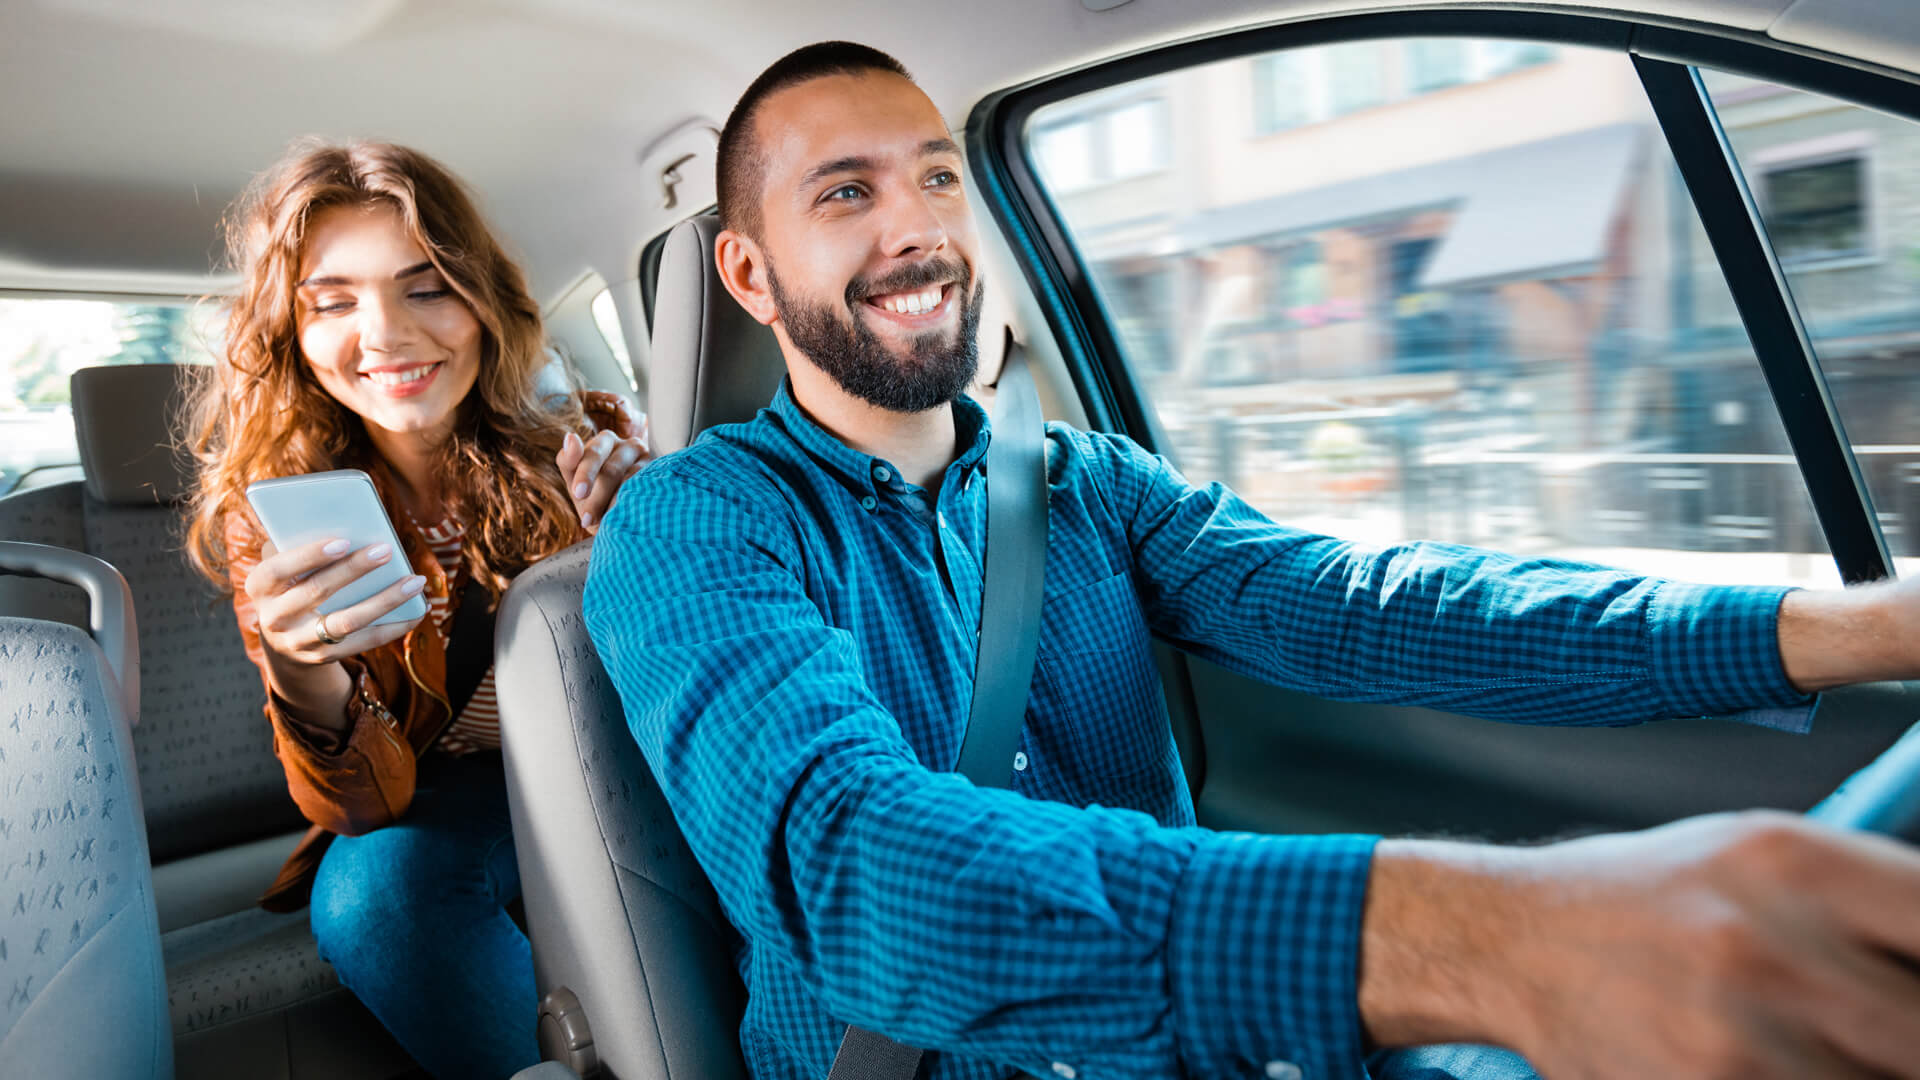 Https Video Black Friday Sales Pale Swag Chandelier Ebay Electronics Cars Fashion Collectibles 04 Rideshare Driver Driving Passenger Shutterstock 1149286787